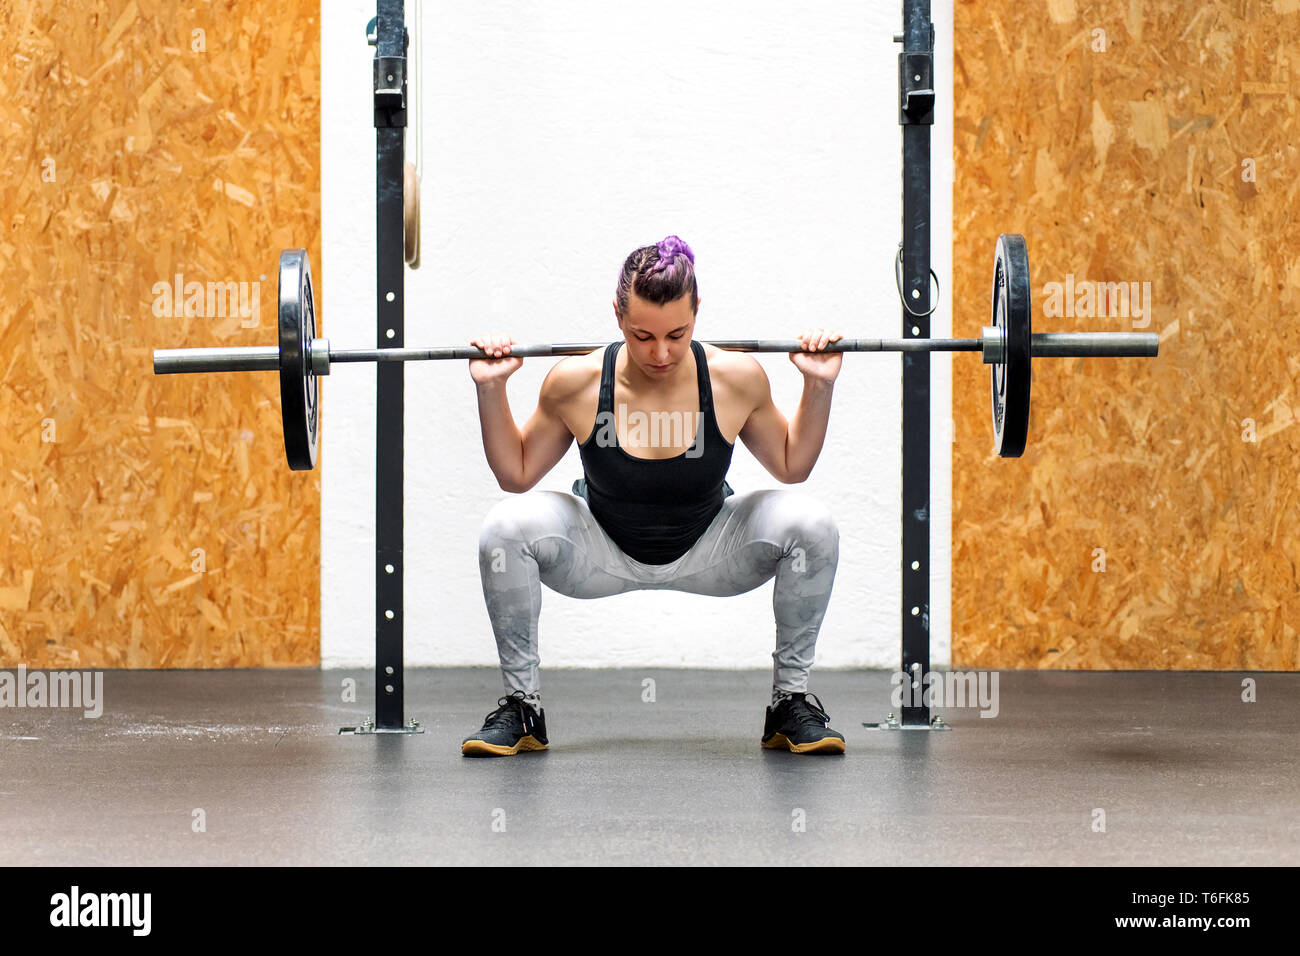 Young girl doing a back squat with a barbell weight resting across the back of her shoulders in a gym - Stock Image